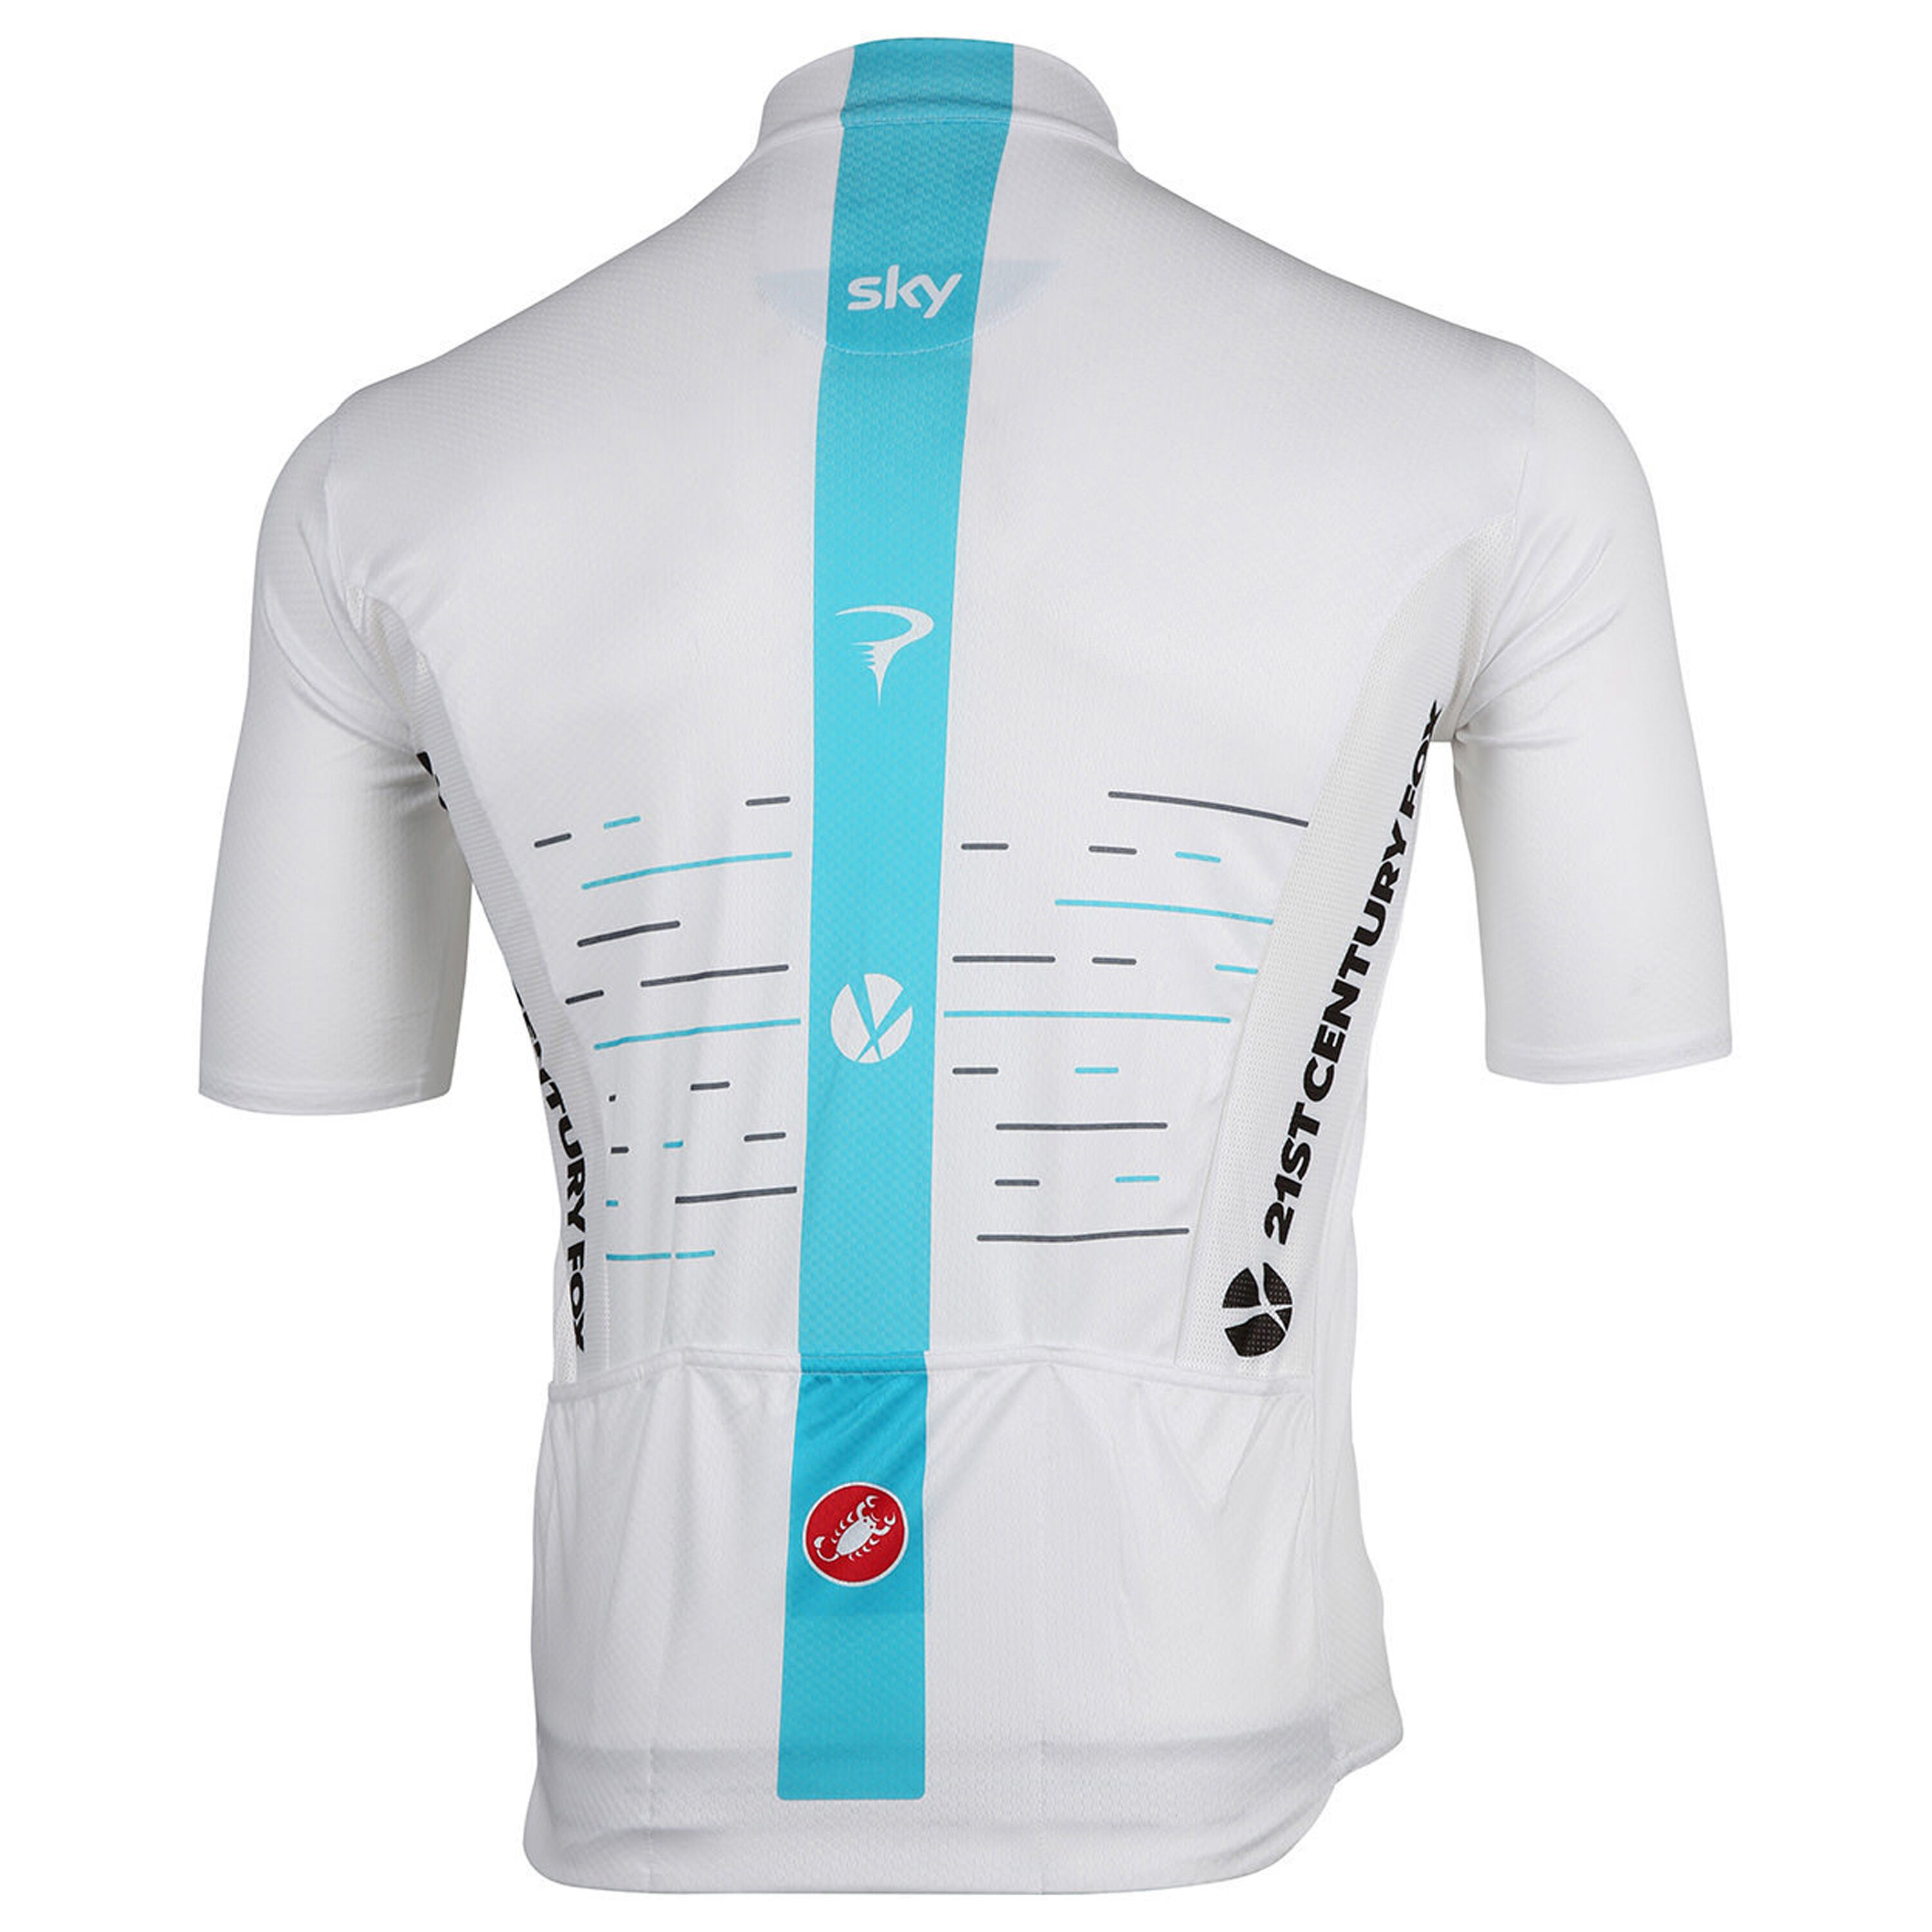 a7da5cde9 Castelli Podio Team Sky Tour De France jersey. Brand  Castelli. Be the  first to review this product